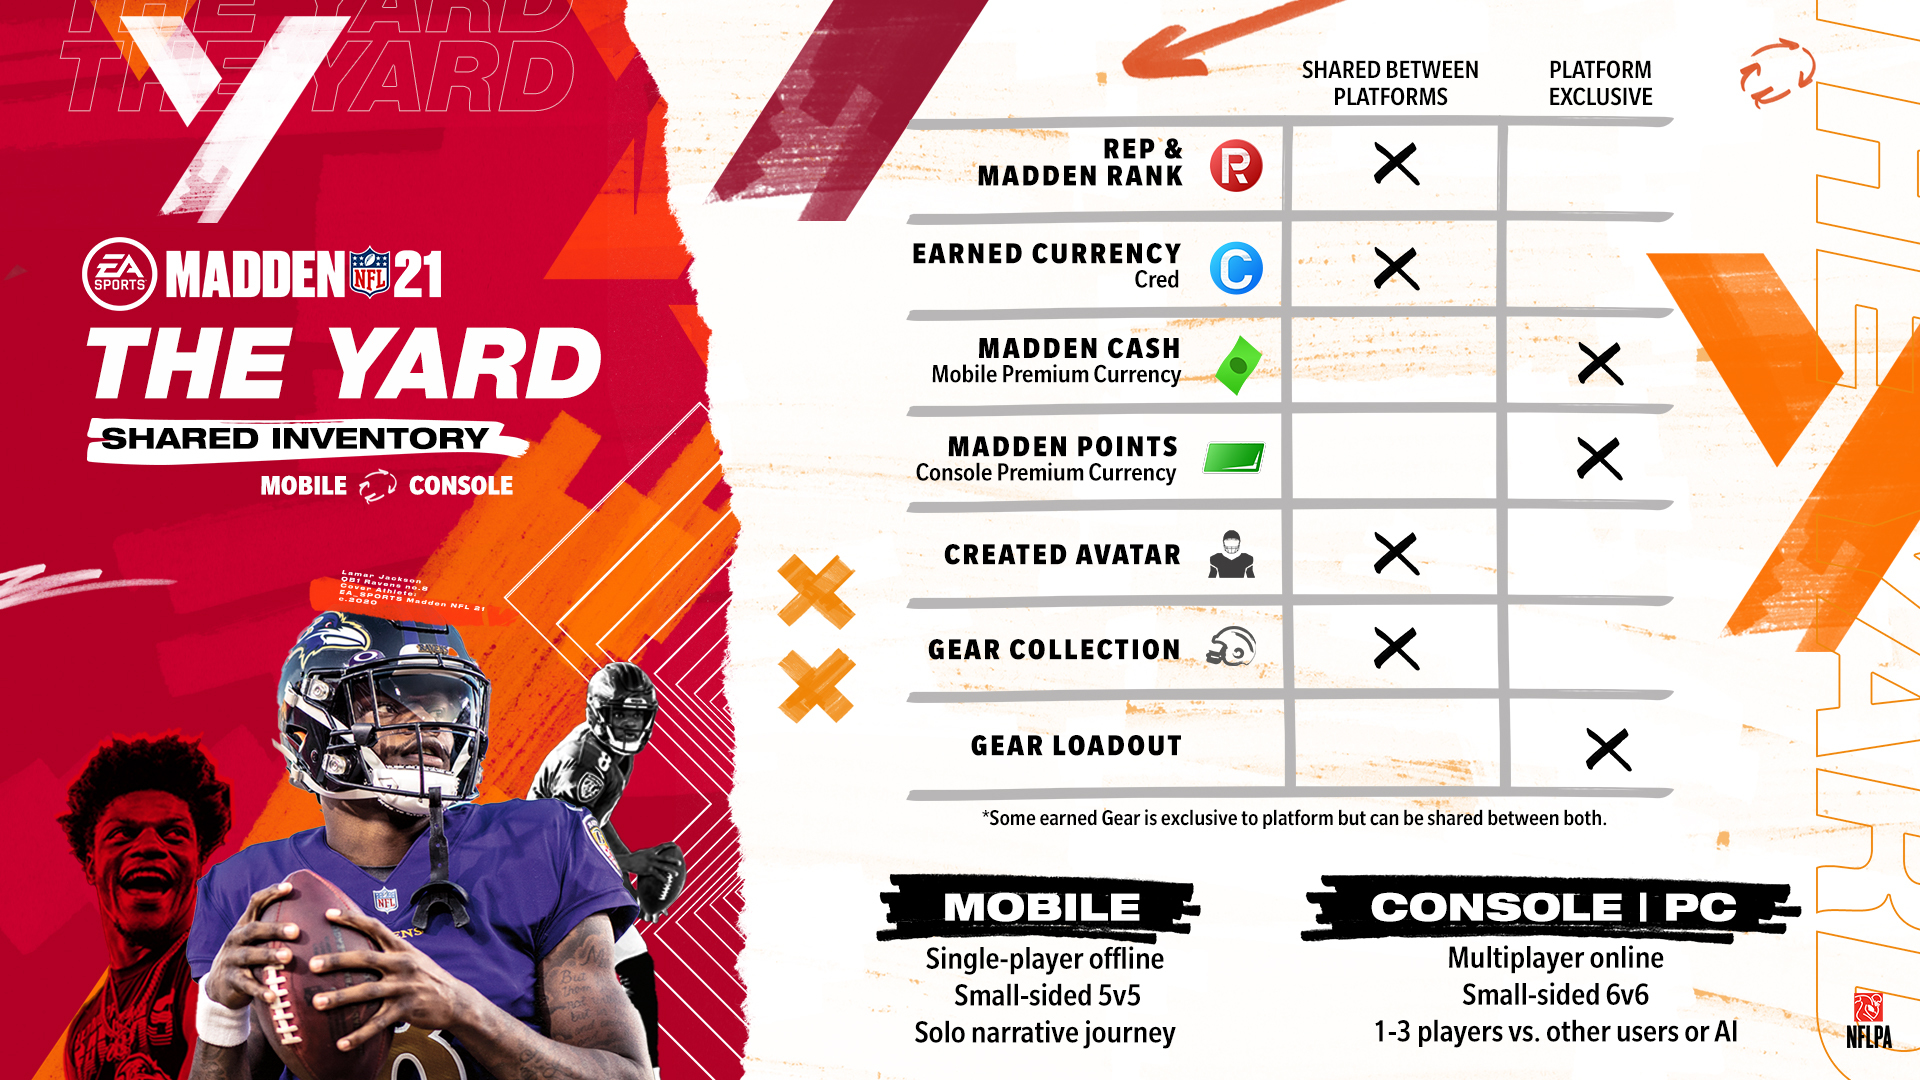 Ea Sports Unveils The Yard A New Backyard Football Inspired Experience Coming To Madden Nfl 21 Business Wire